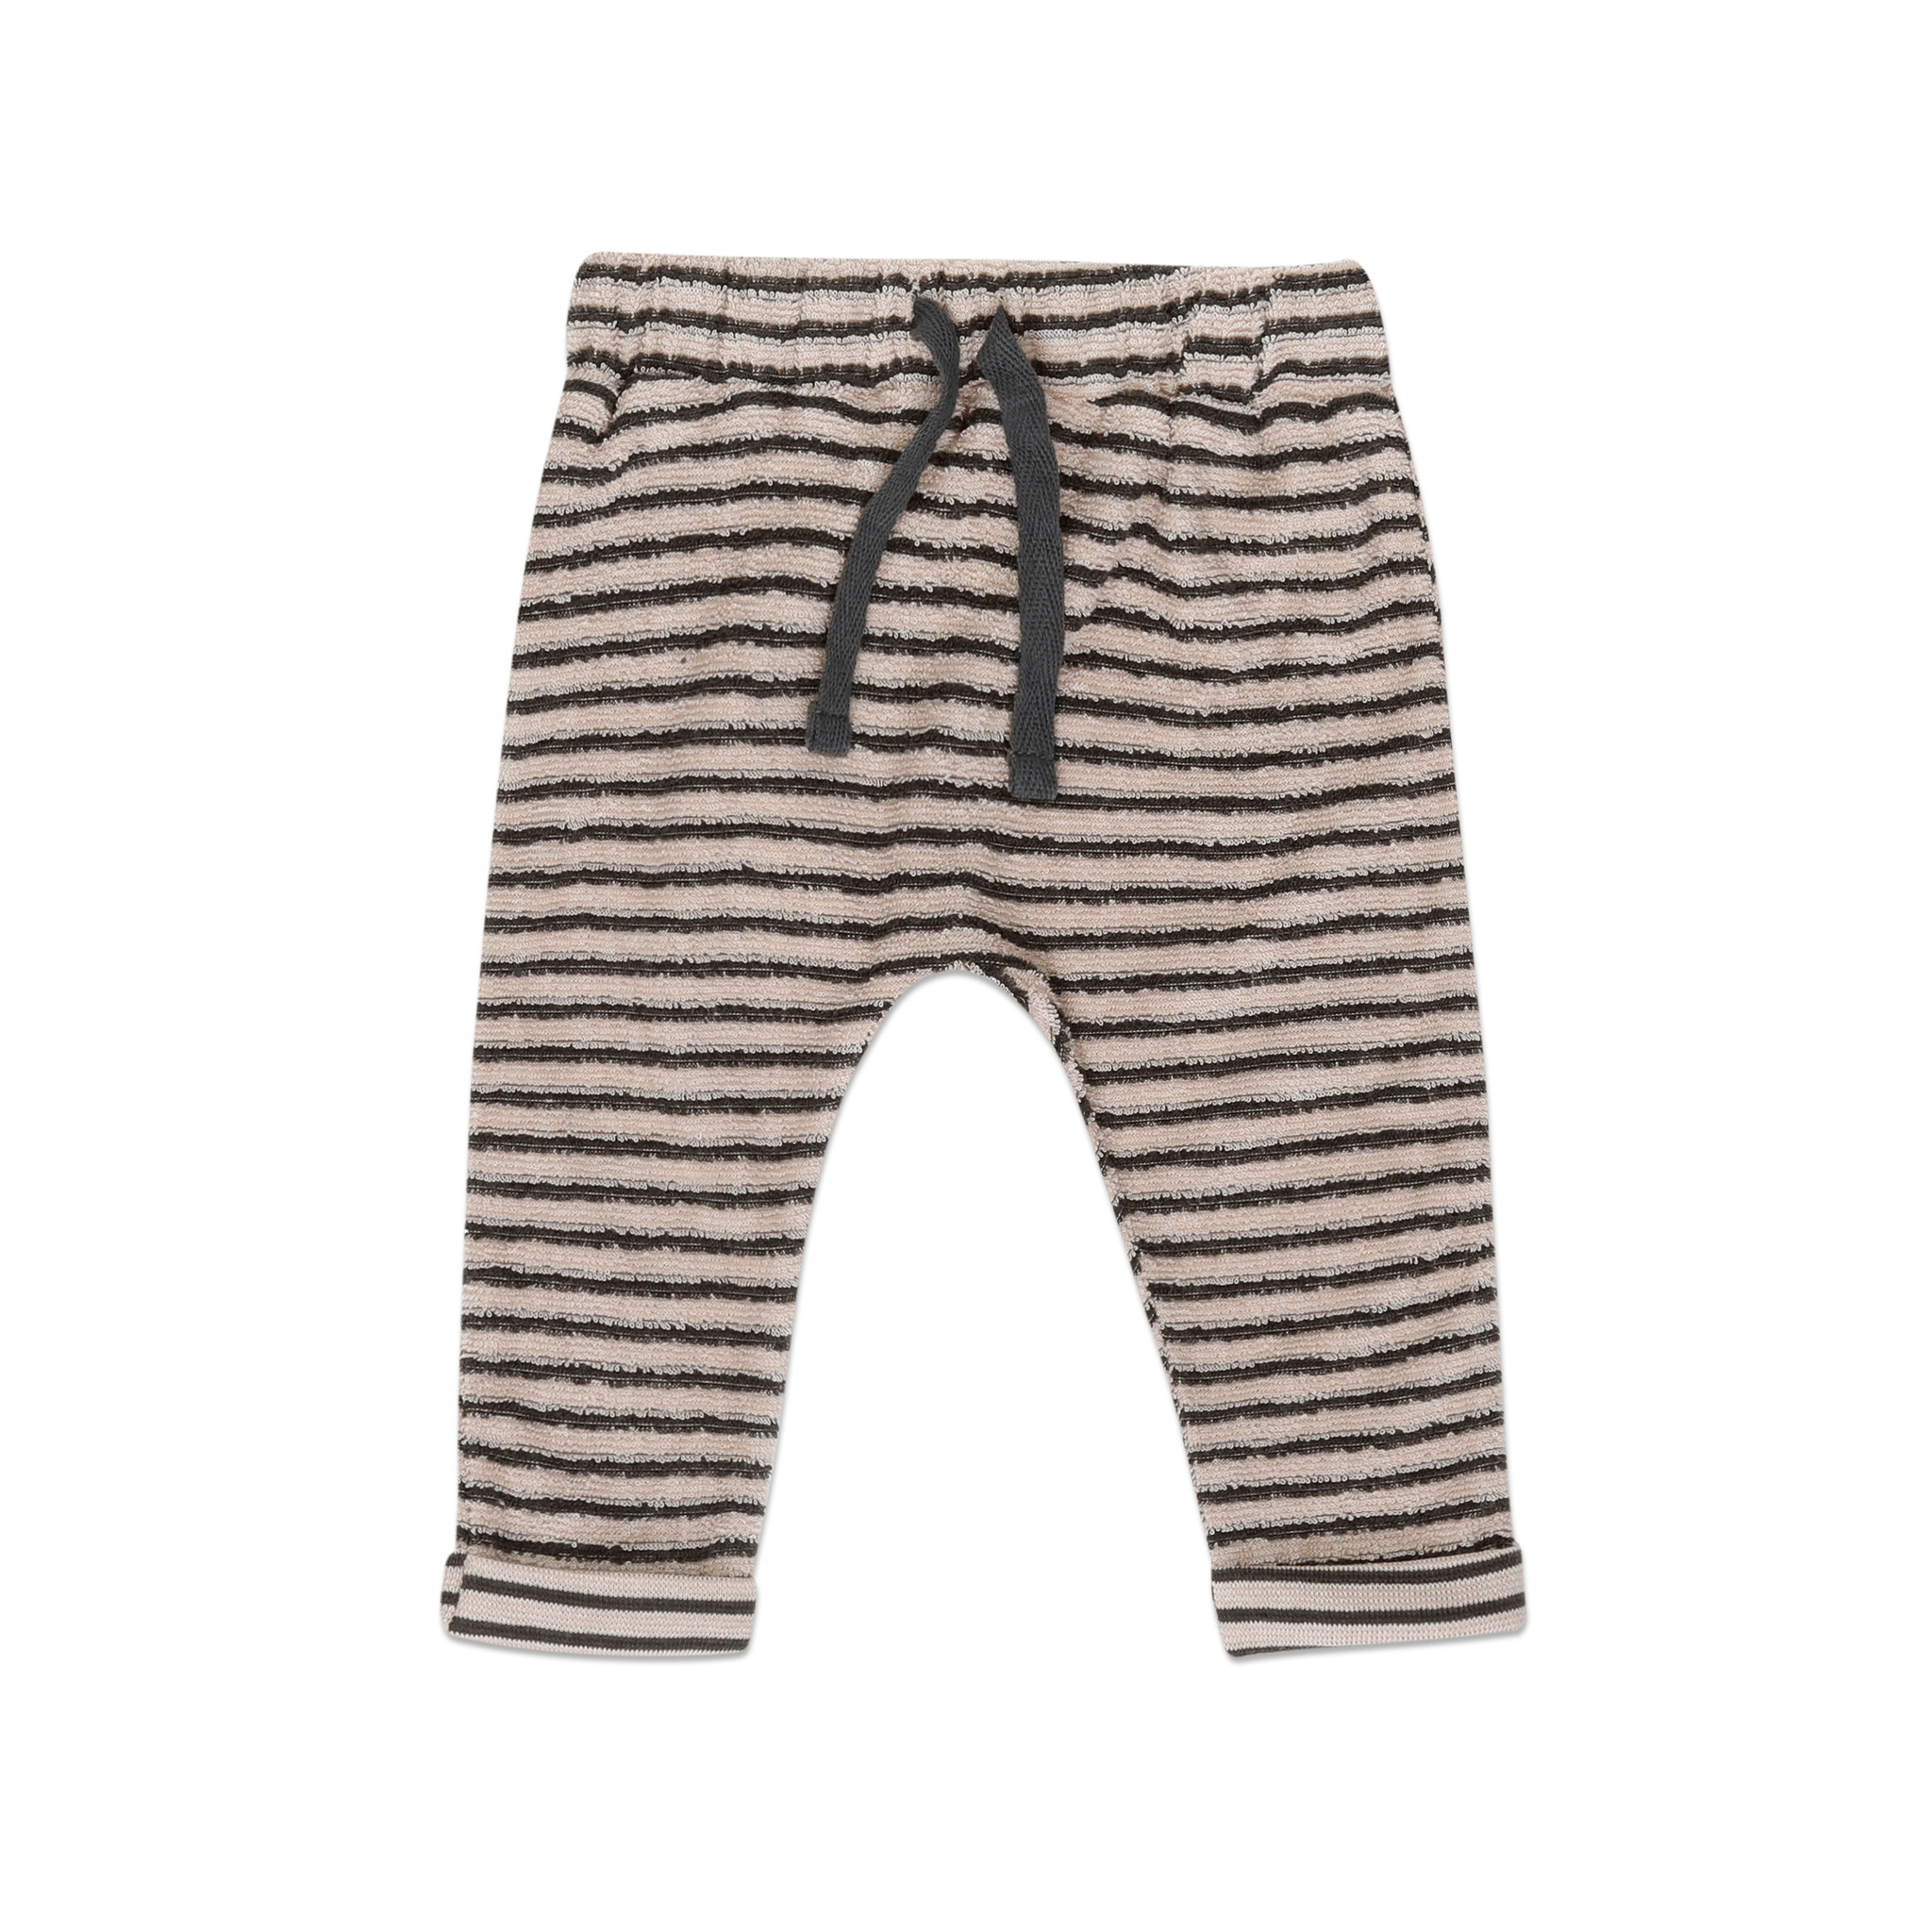 Baby pants loopy stripes - Graphite-1